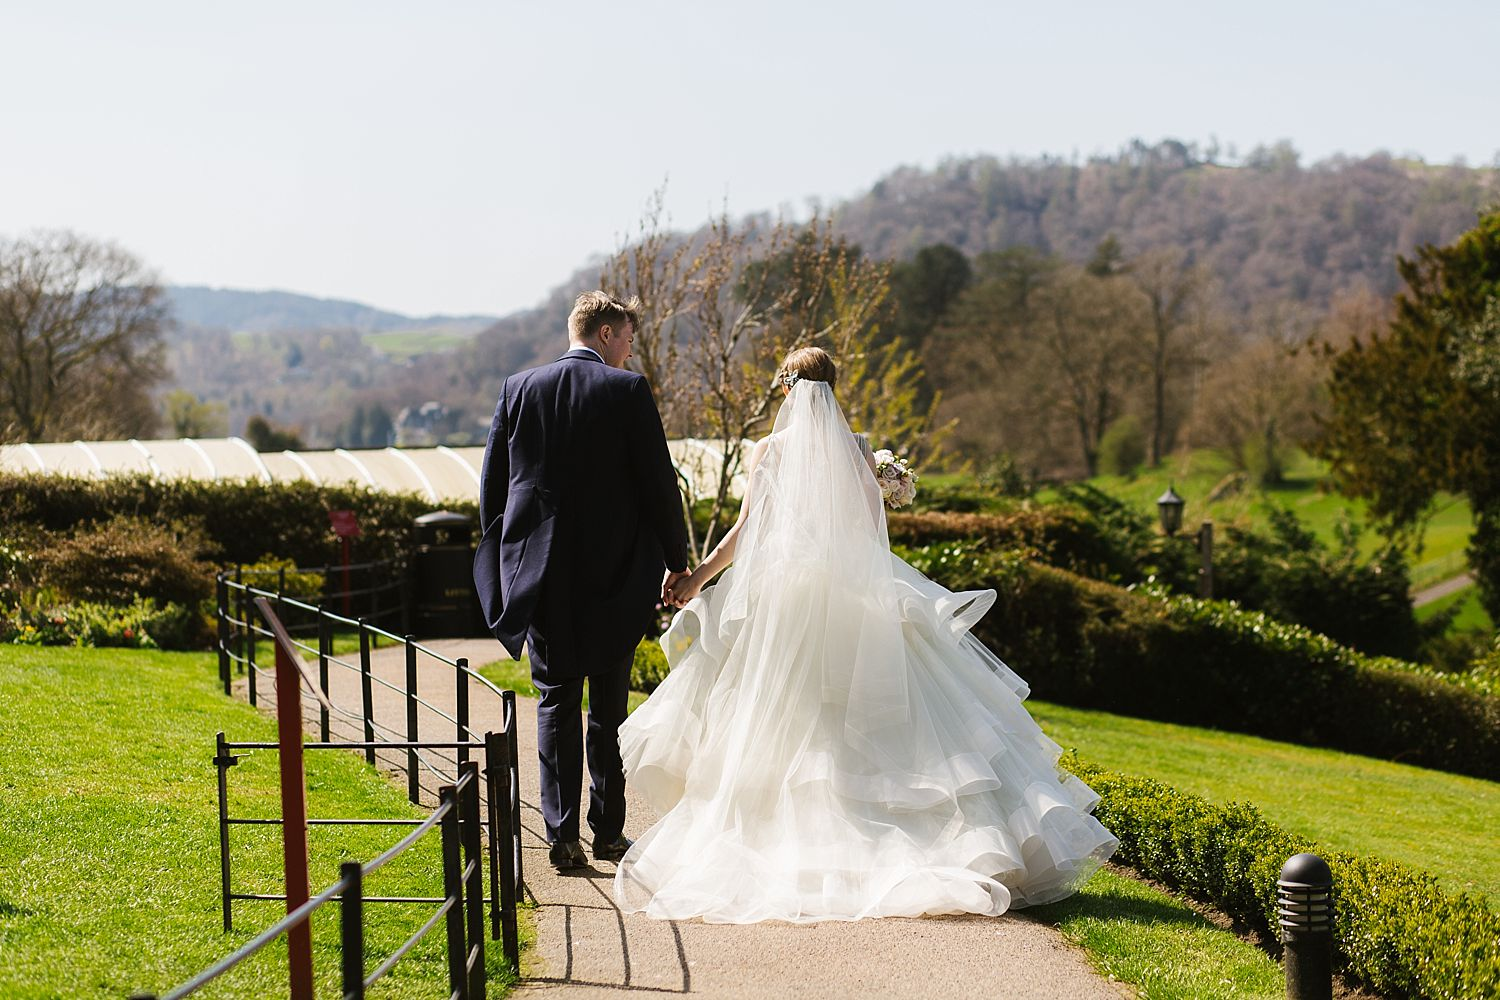 back view of brade and groom walking thrugh gardens of Laura Ashley Belsfield Hotel